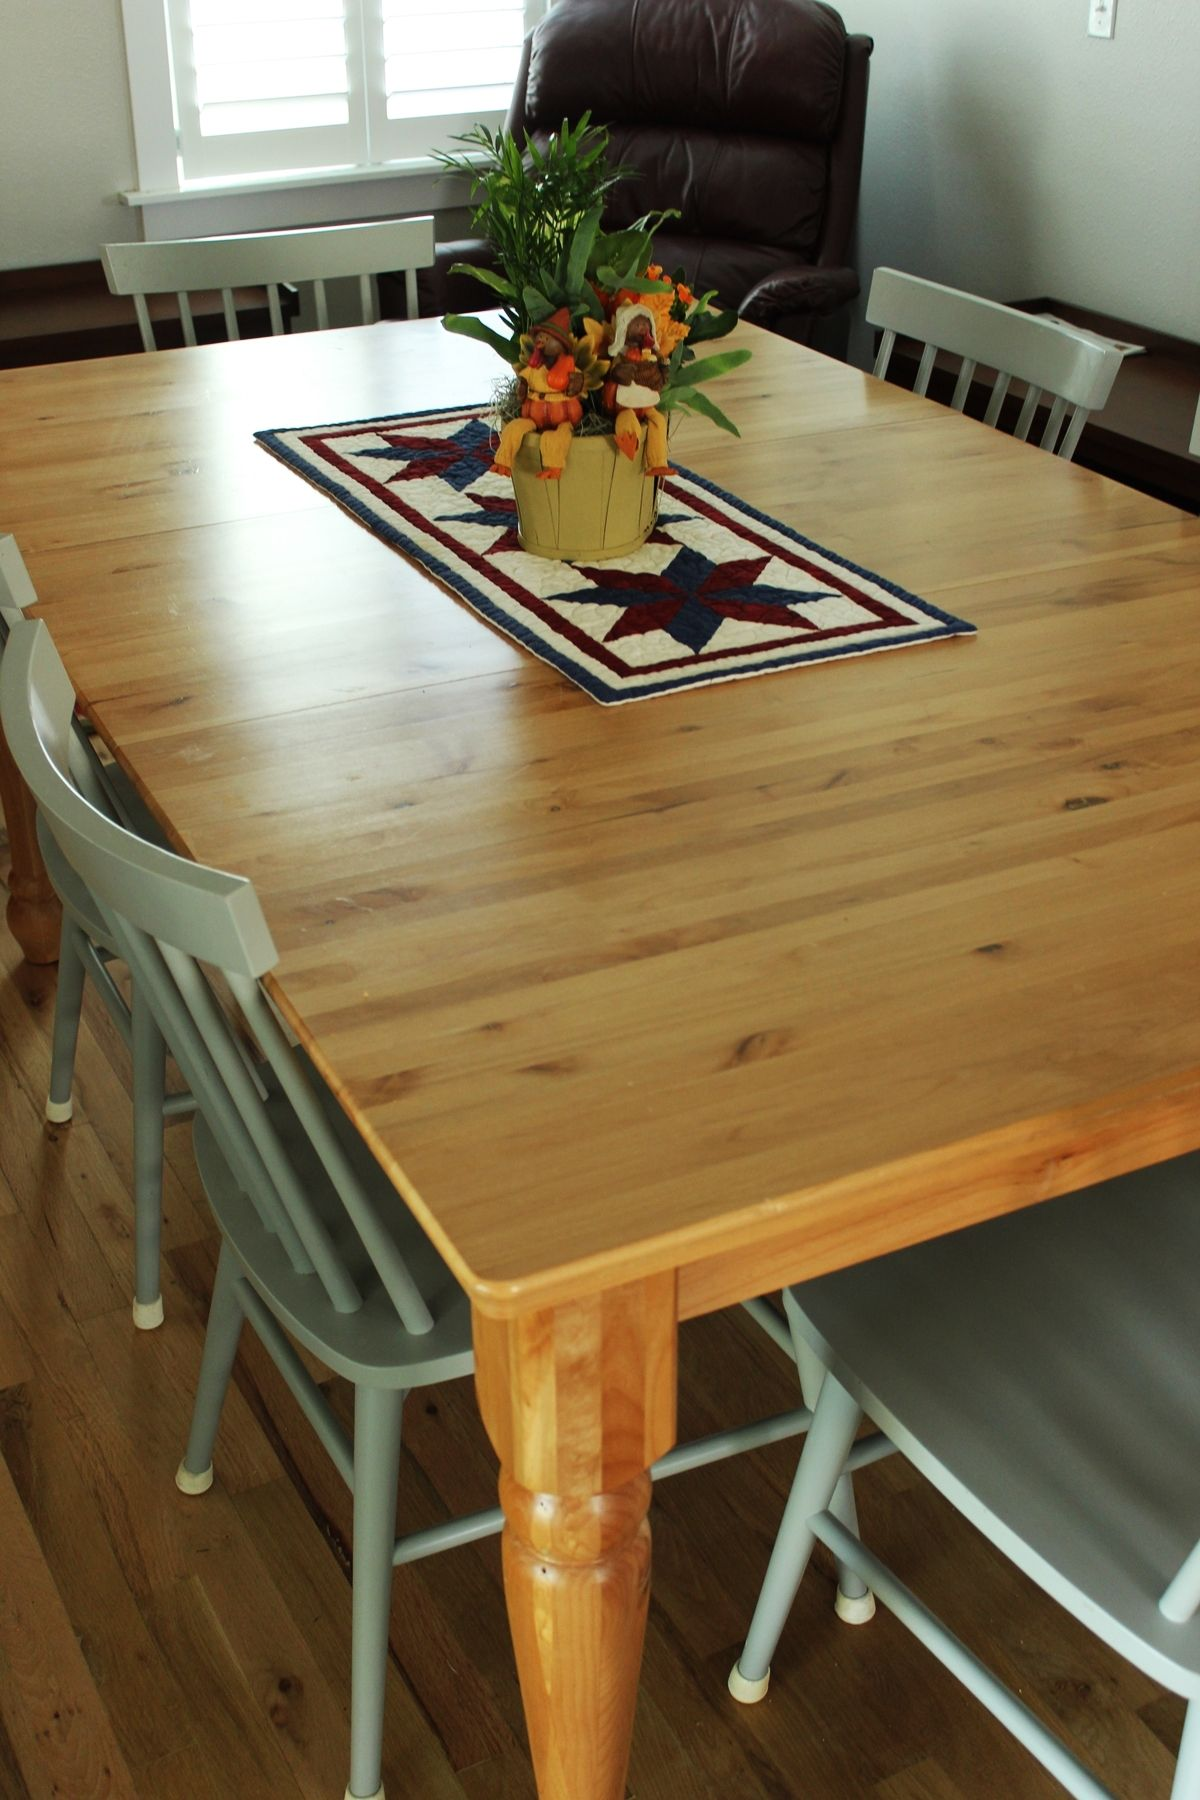 How to Decorate Dining Room - decorating the table